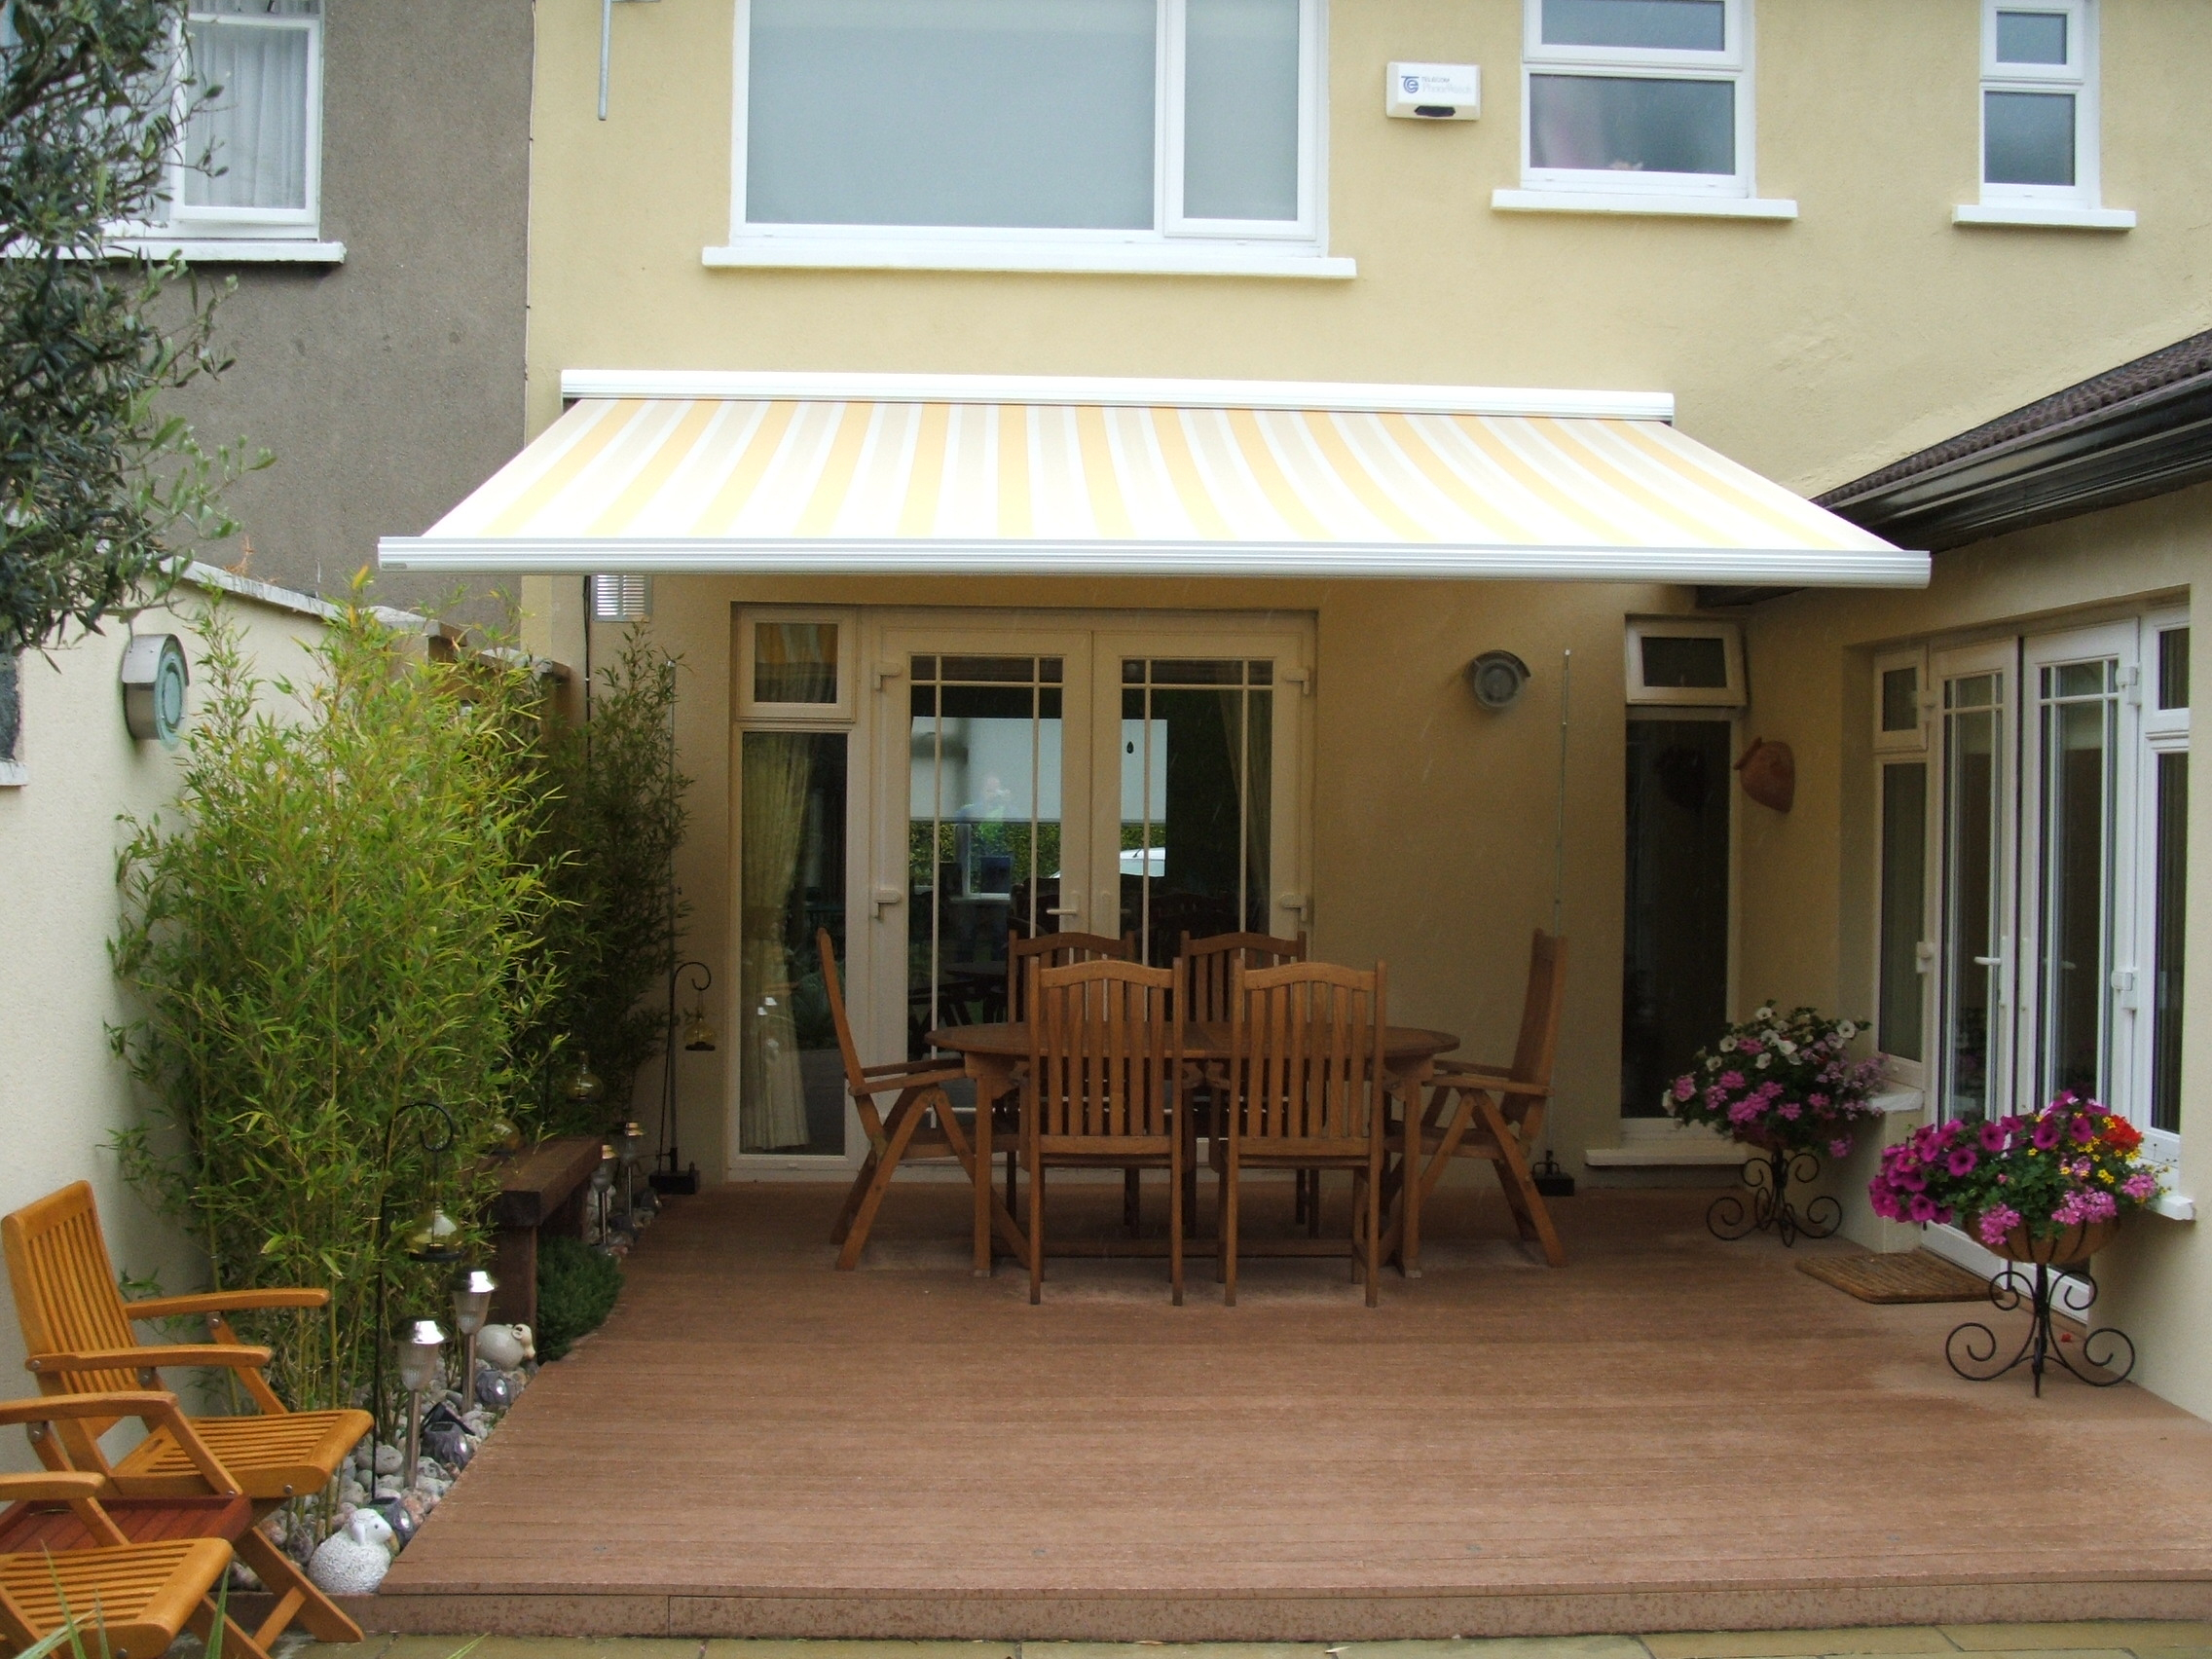 Metal Patio Awnings Luxury Don Neon Signs And Awnings Metal Patio In  Proportions 2272 X 1704